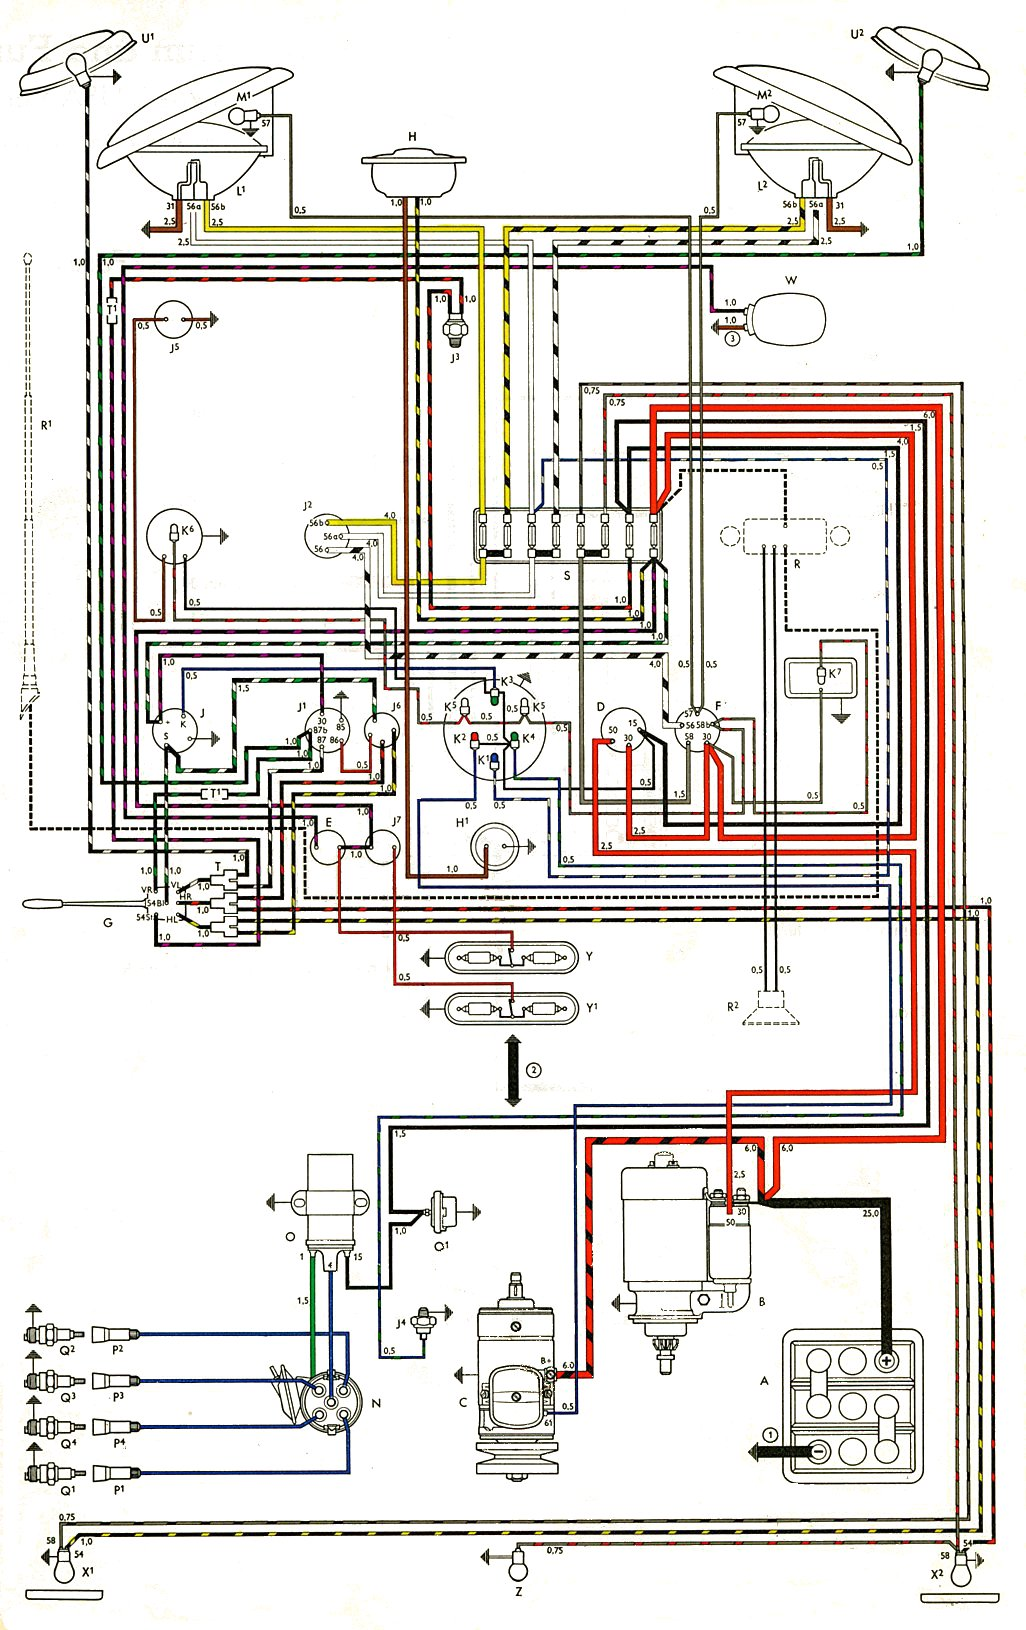 bus_63_USA thesamba com type 2 wiring diagrams 1978 vw wiring diagram at n-0.co